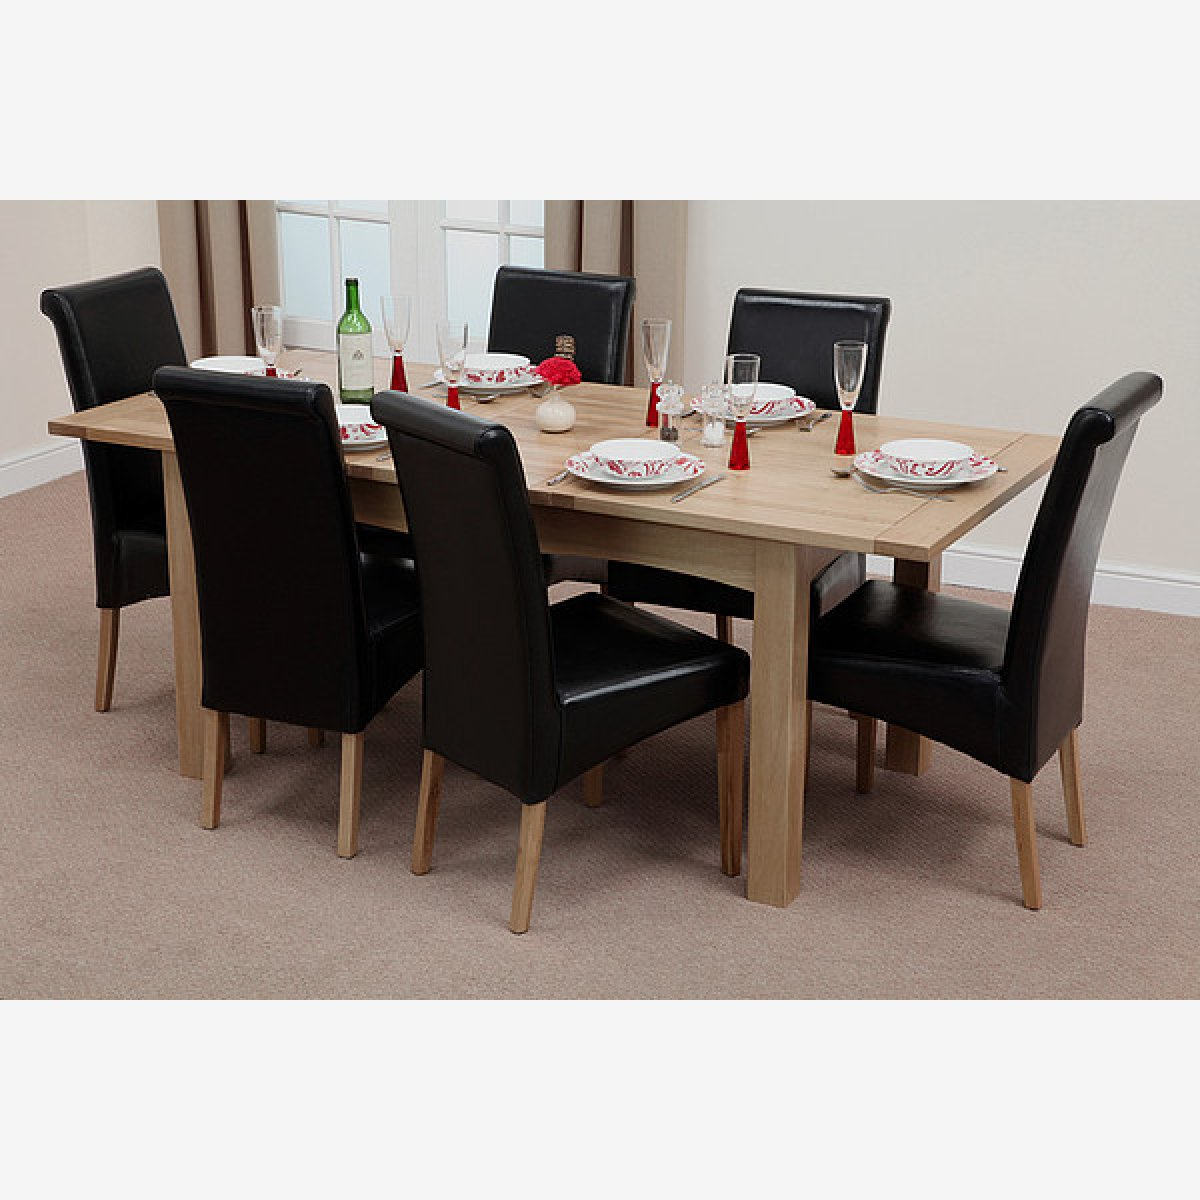 solid oak dining table and chairs stool chair for sale philippines cairo extending in 436 black leather